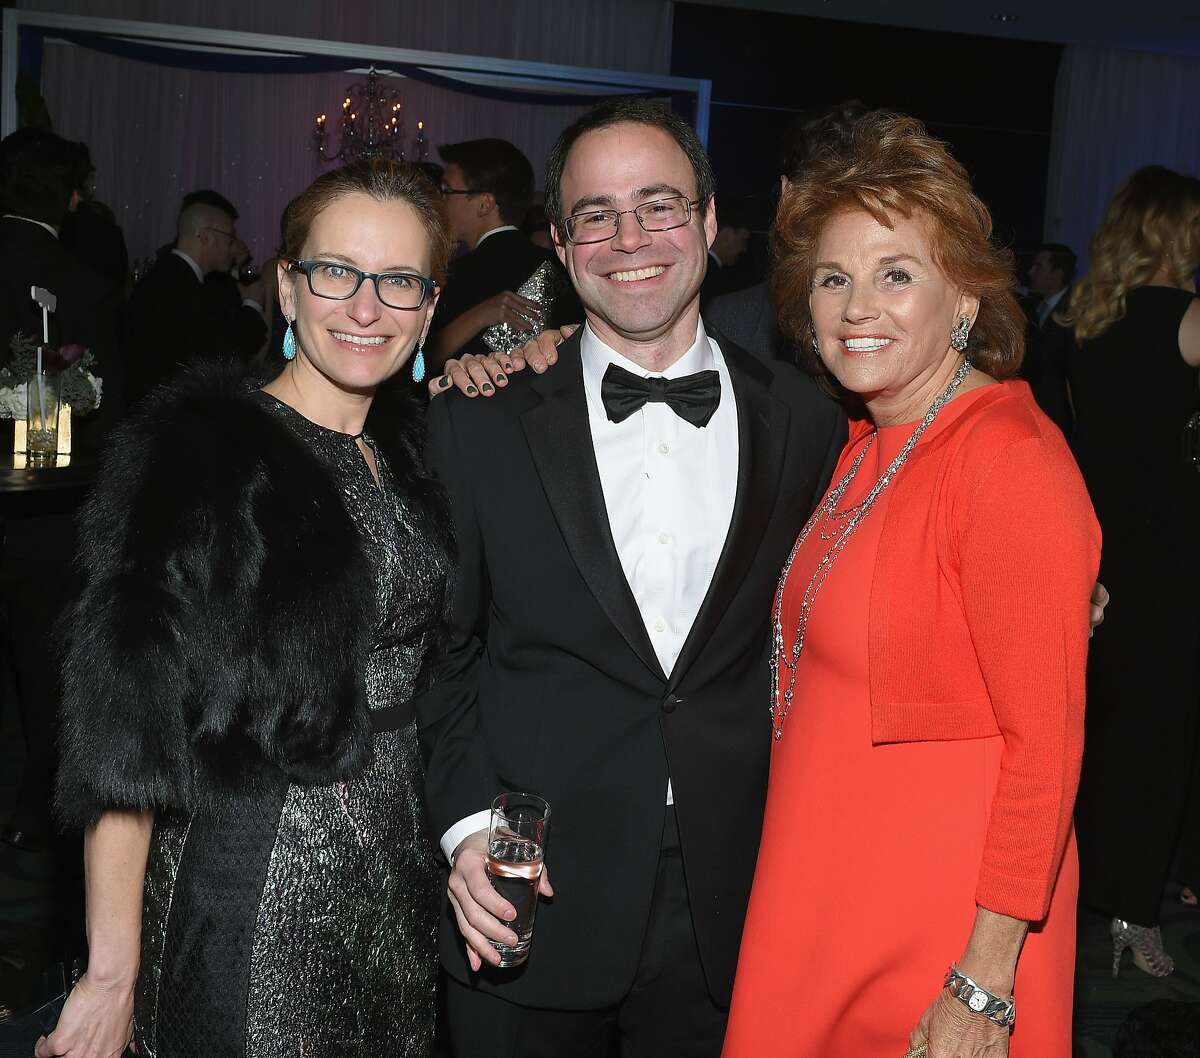 WASHINGTON, DC - APRIL 25: Jacqueline Reses, Ron Bell and guest attend the Yahoo News/ABC News White House Correspondents' dinner reception pre-party at the Washington Hilton on Saturday, April 25, 2015 in Washington, DC. (Photo by Andrew H. Walker/Getty Images for Yahoo)